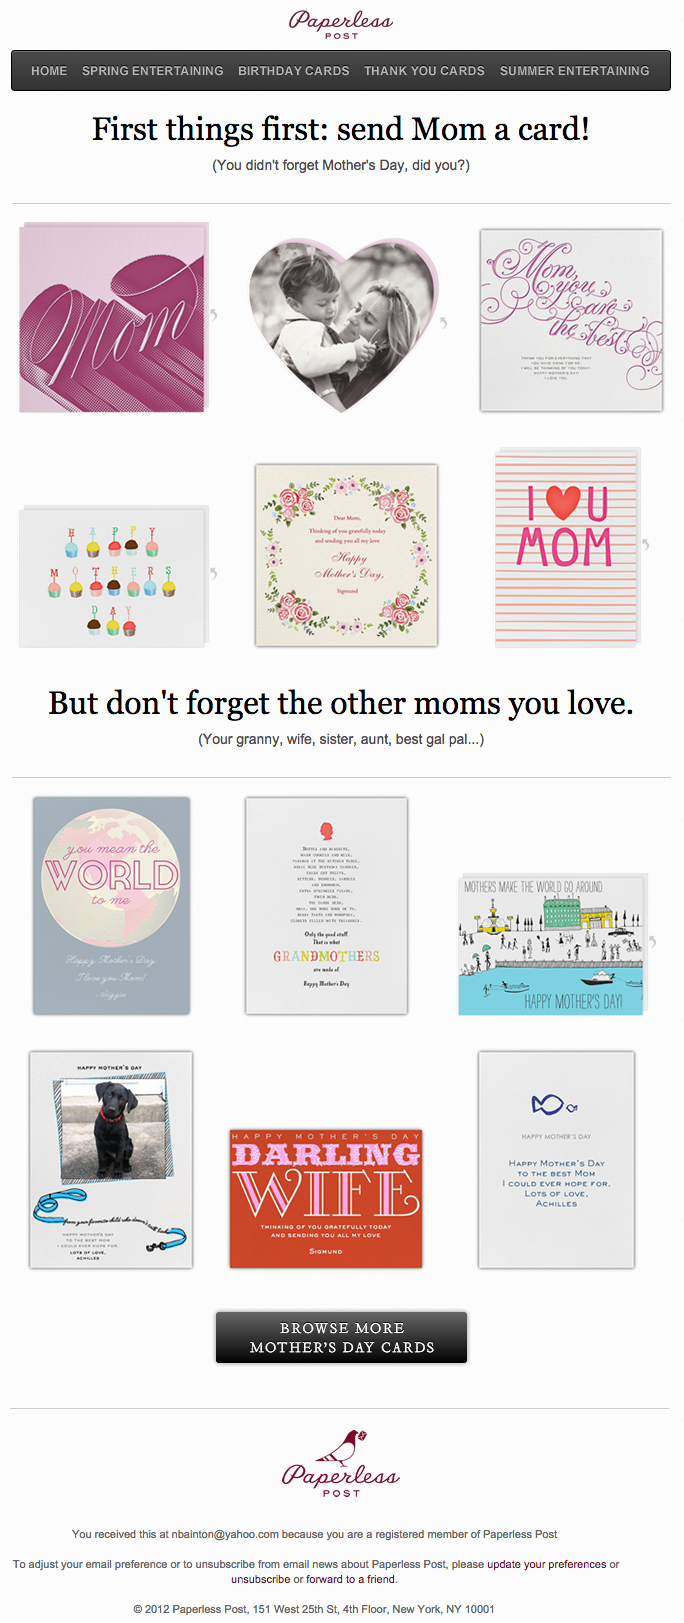 Email marketing campaign example by Paperless Post on Mother's Day